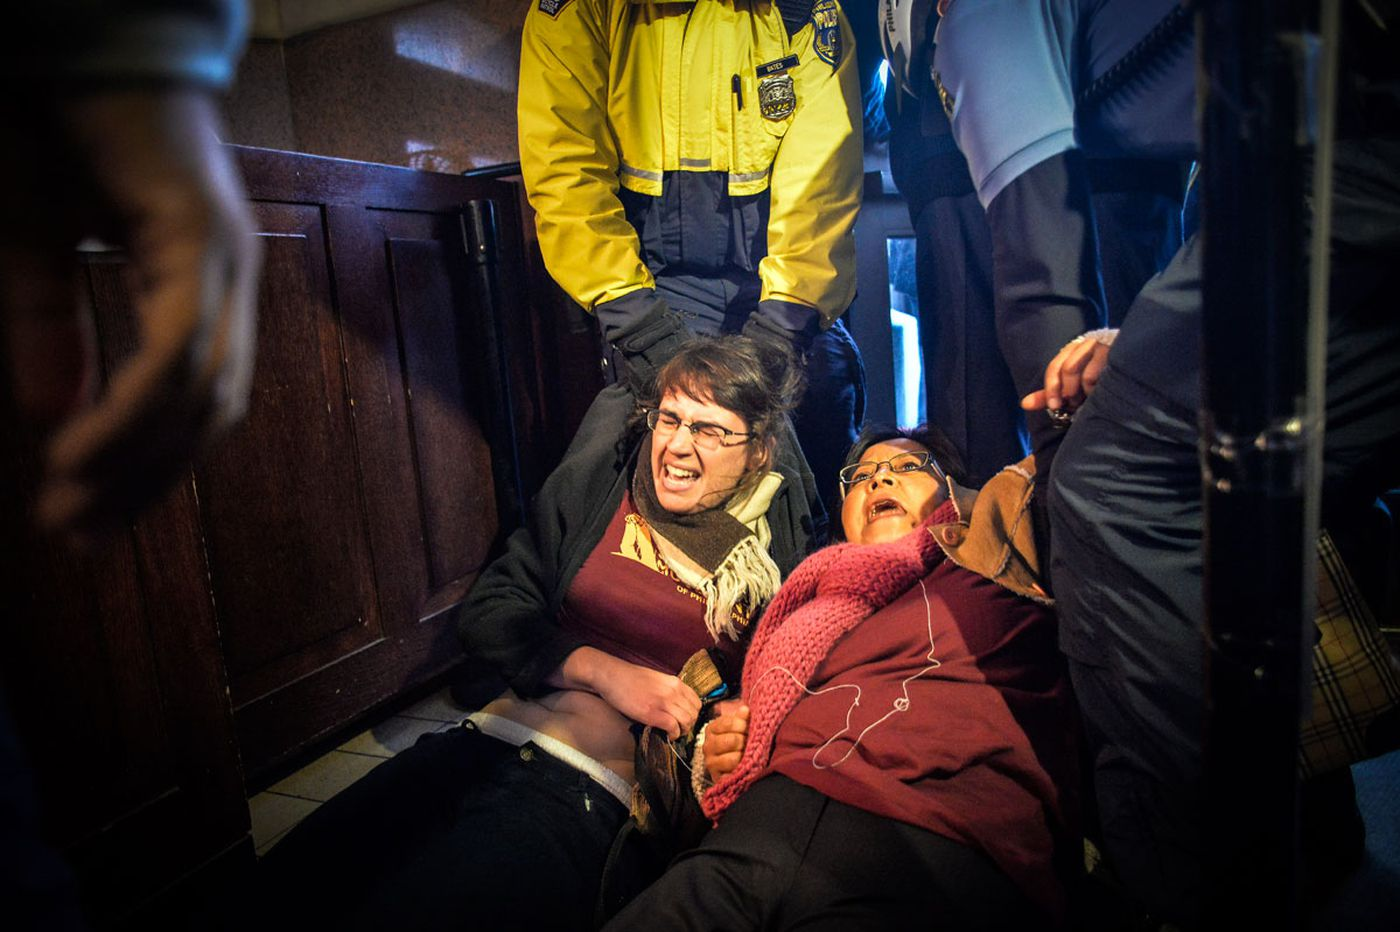 Immigration activists removed at City Hall